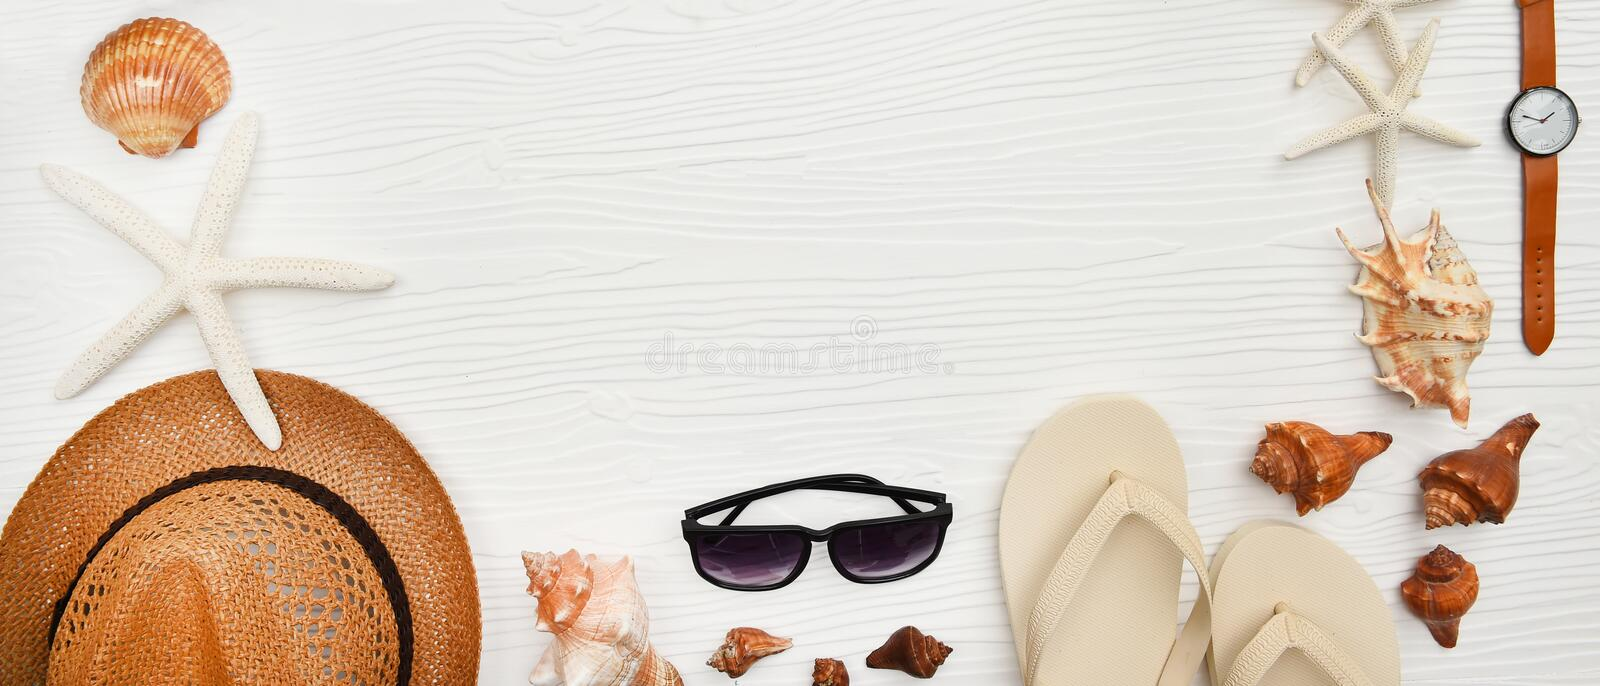 Summer hat and sunglasses with sandals and shells stock photos